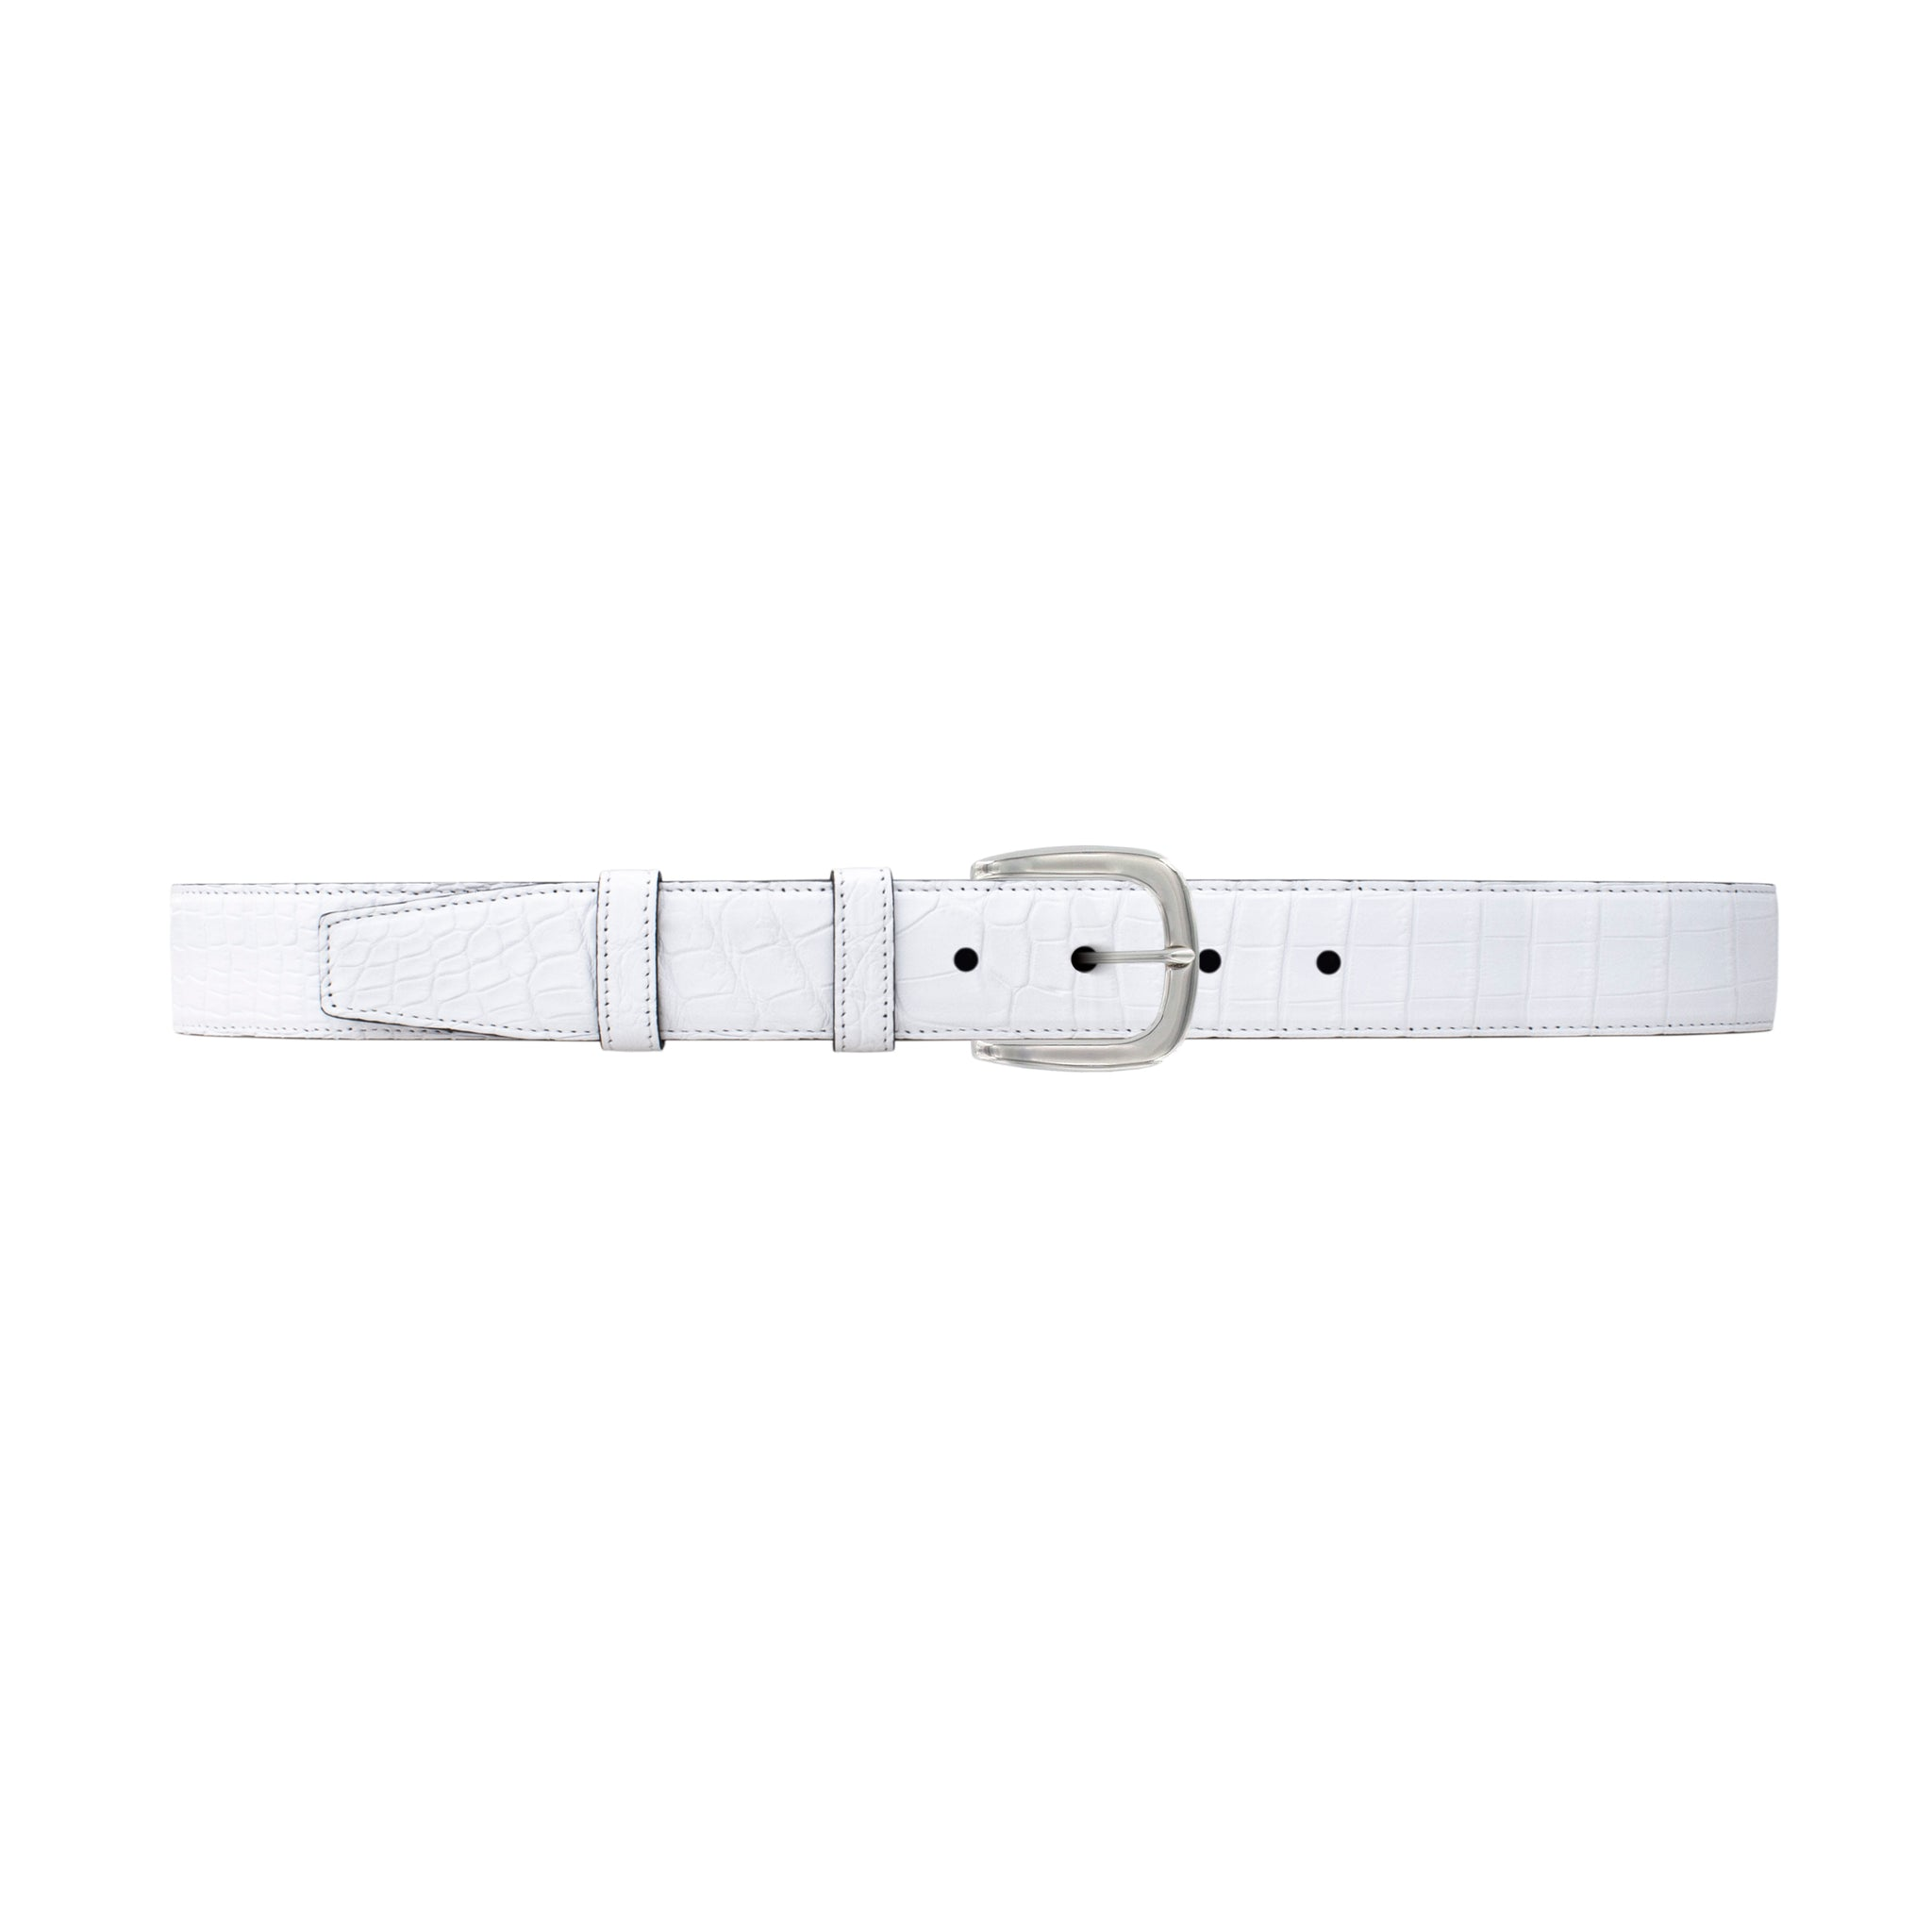 "1 1/4"" White Classic Belt with Oxford Cocktail Buckle in Polished Nickel"